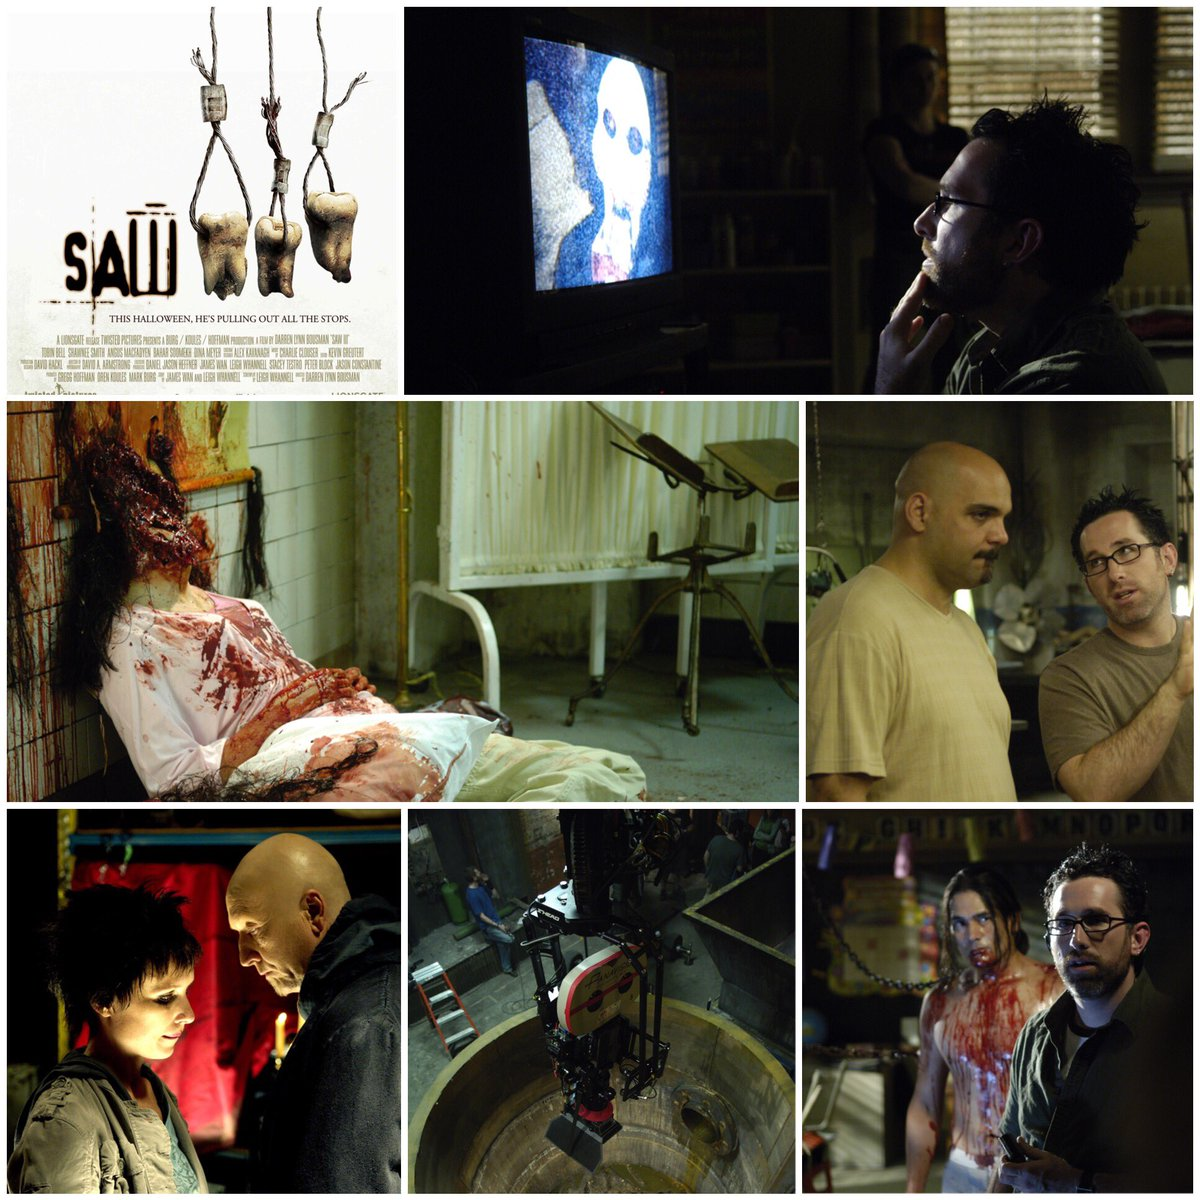 Saw III released one decade ago. Insane to look back on the last ten years! #SAW https://t.co/ejHdL6ywb9